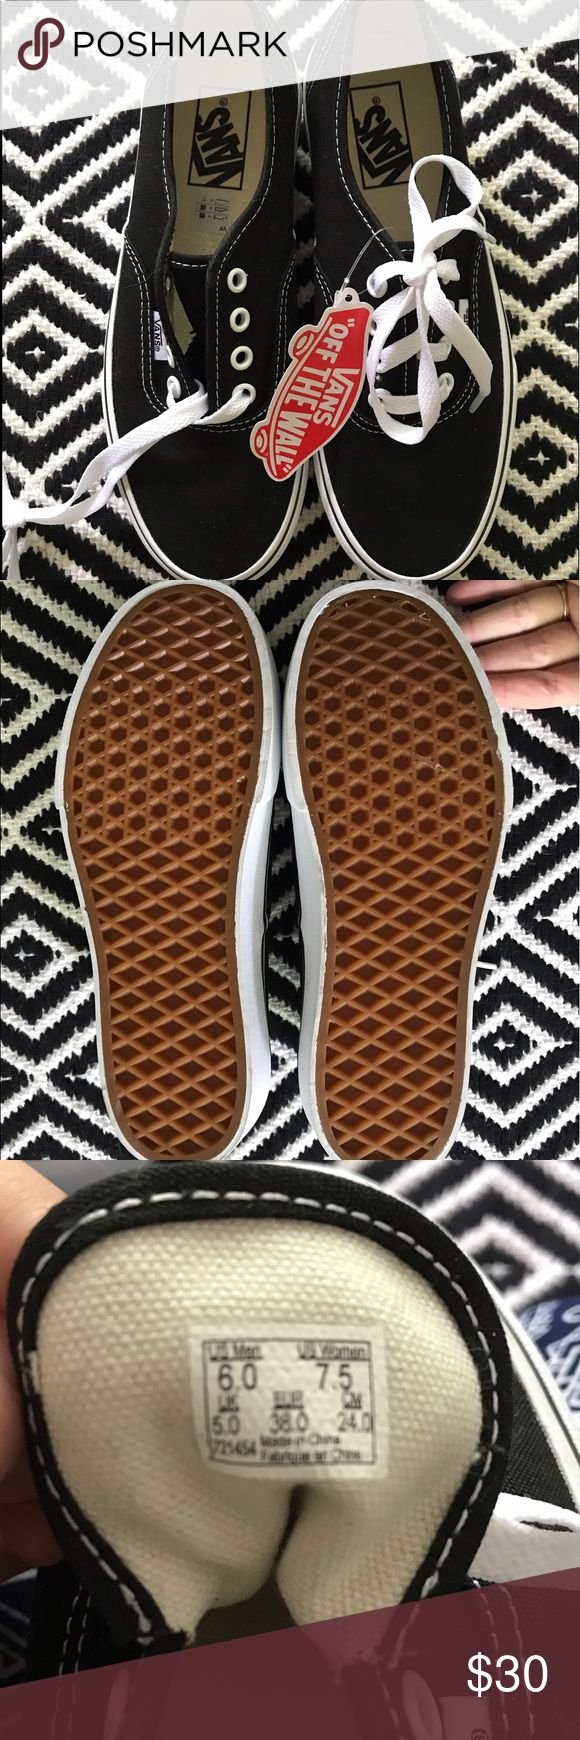 NWT Vans size 7.5 Women's 6 Men's You should buy these. They are so gd cute! Size 7.5 for women and 6 for men Vans Shoes Sneakers